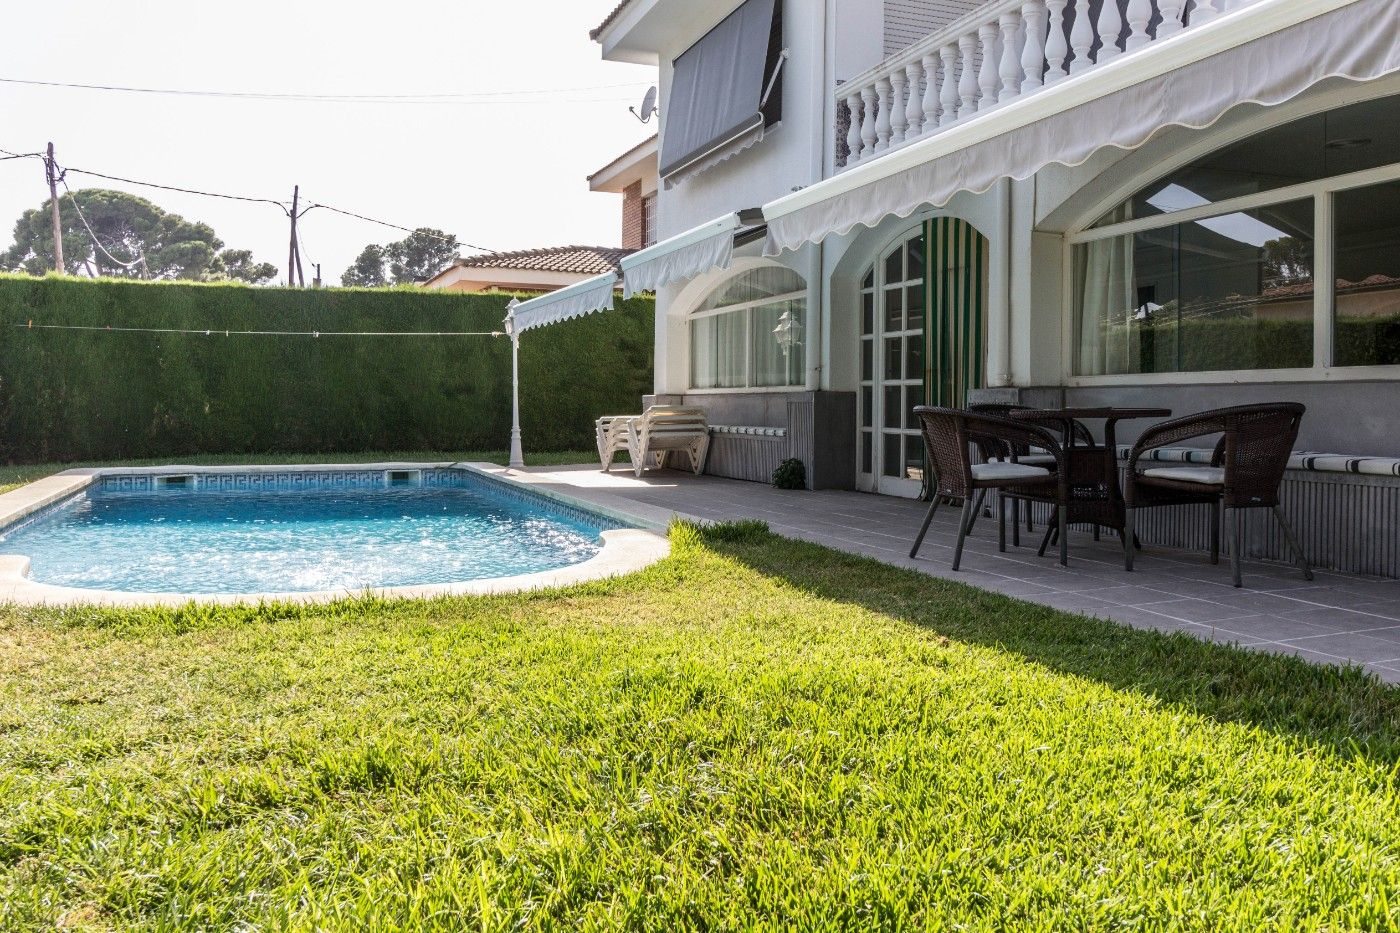 House in Carrer caravel.la, 30. Con piscina privada